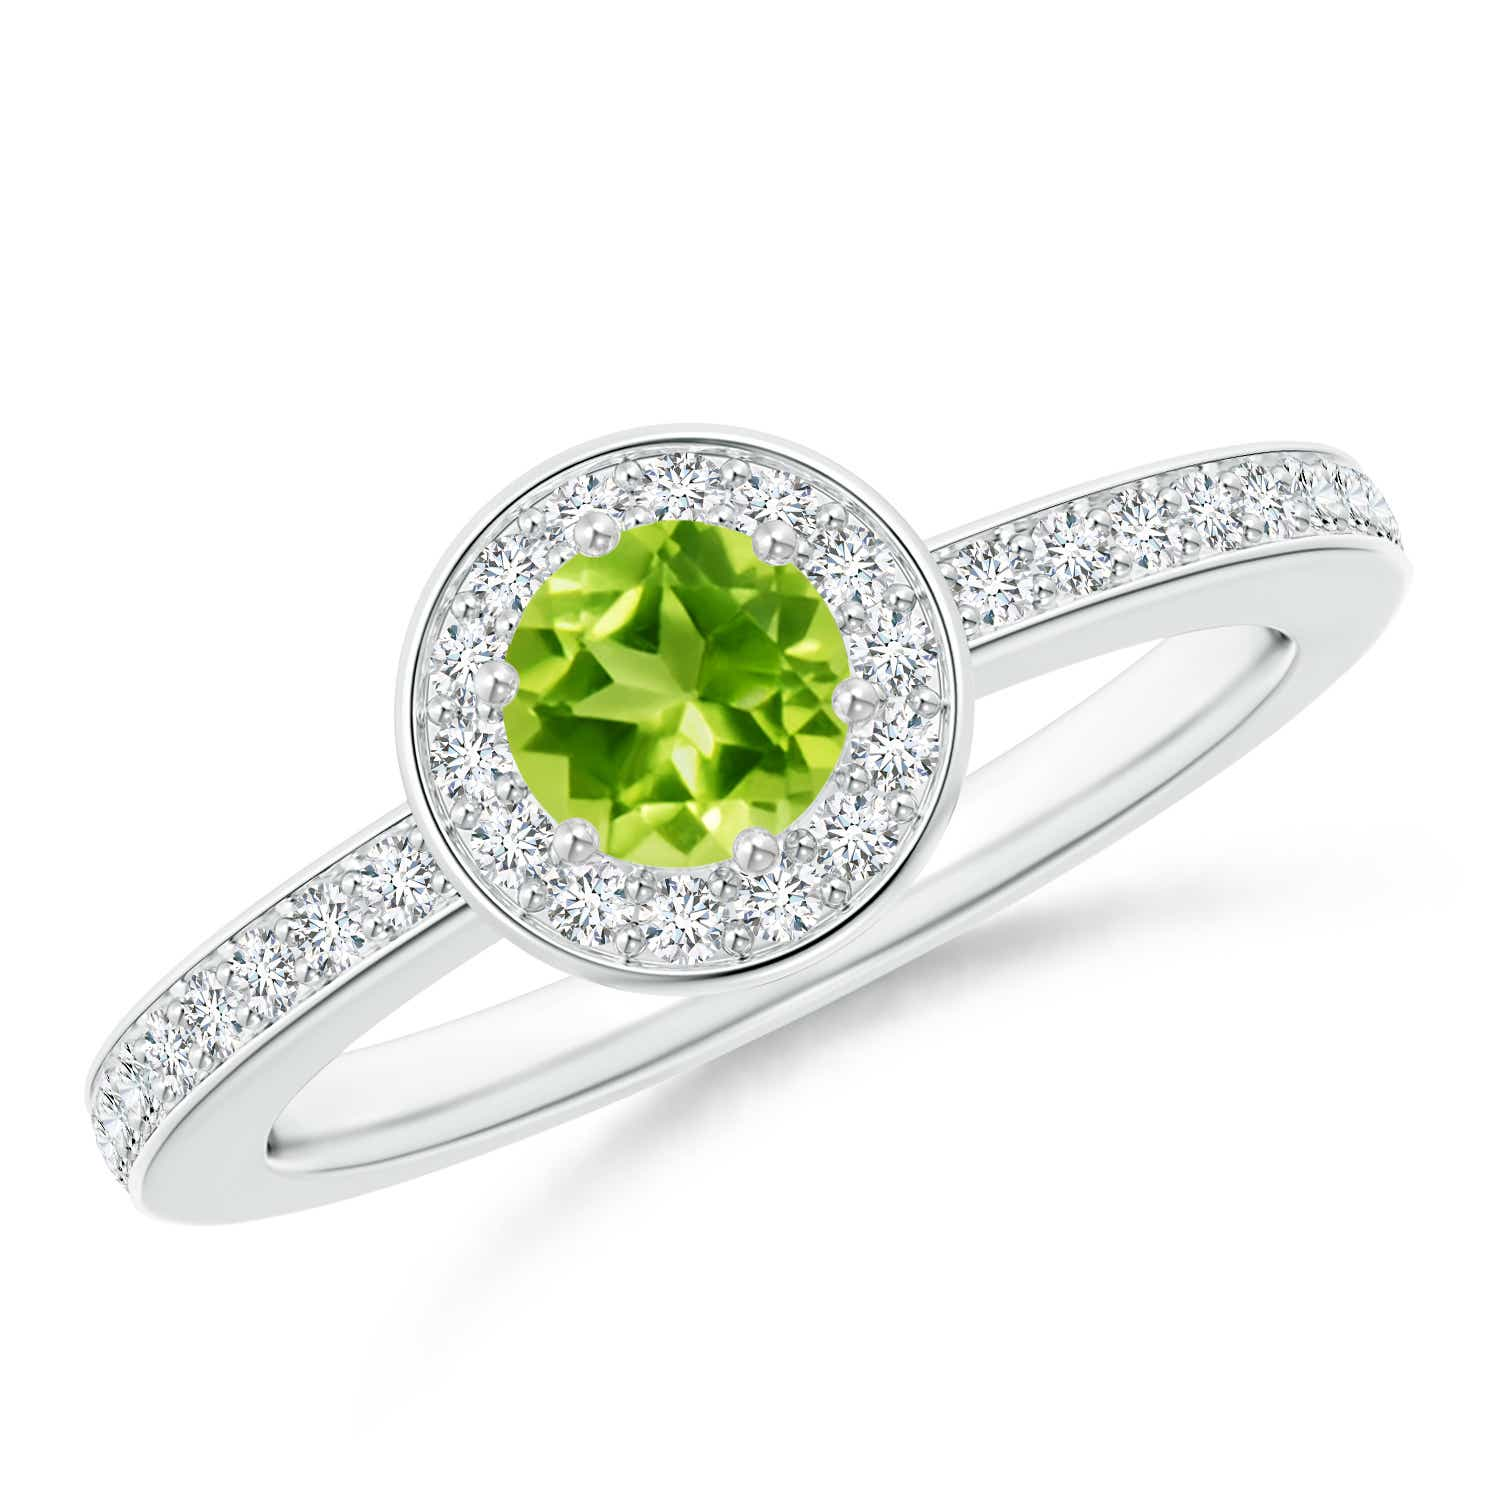 Angara Natural Peridot Solitaire Engagement Ring in White Gold O1toLzAyE5